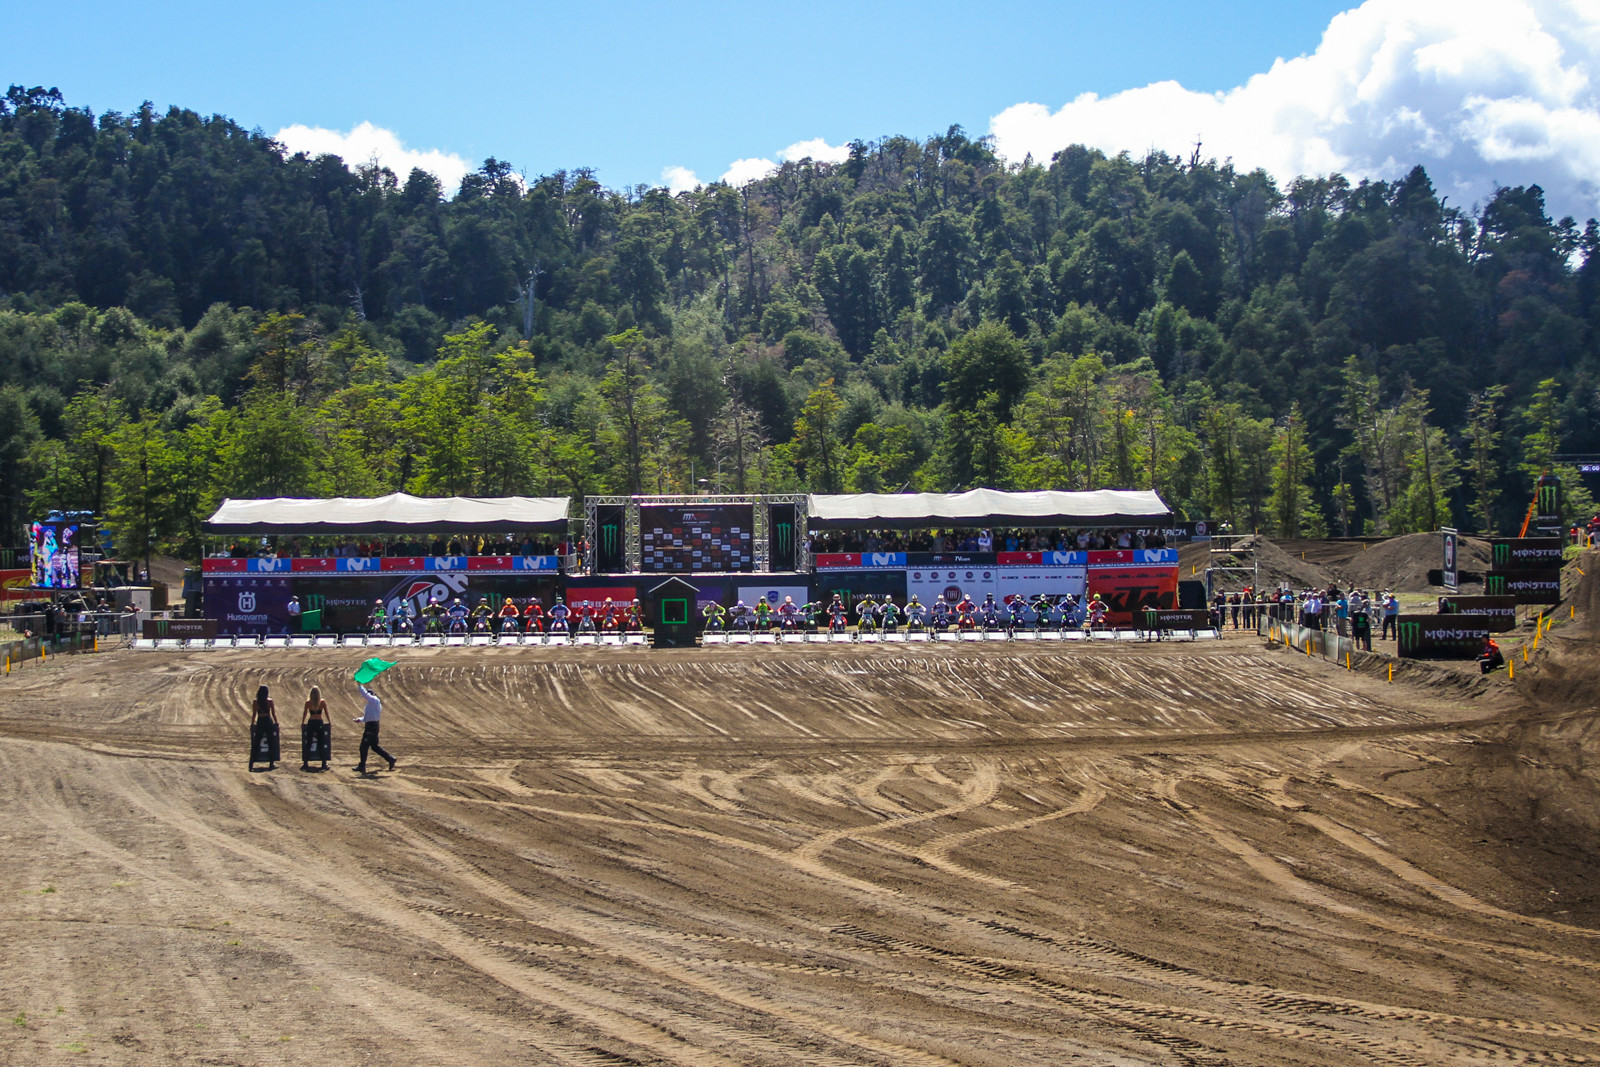 Argentina is quite the change in scenery for the MXGP opener and we approve!